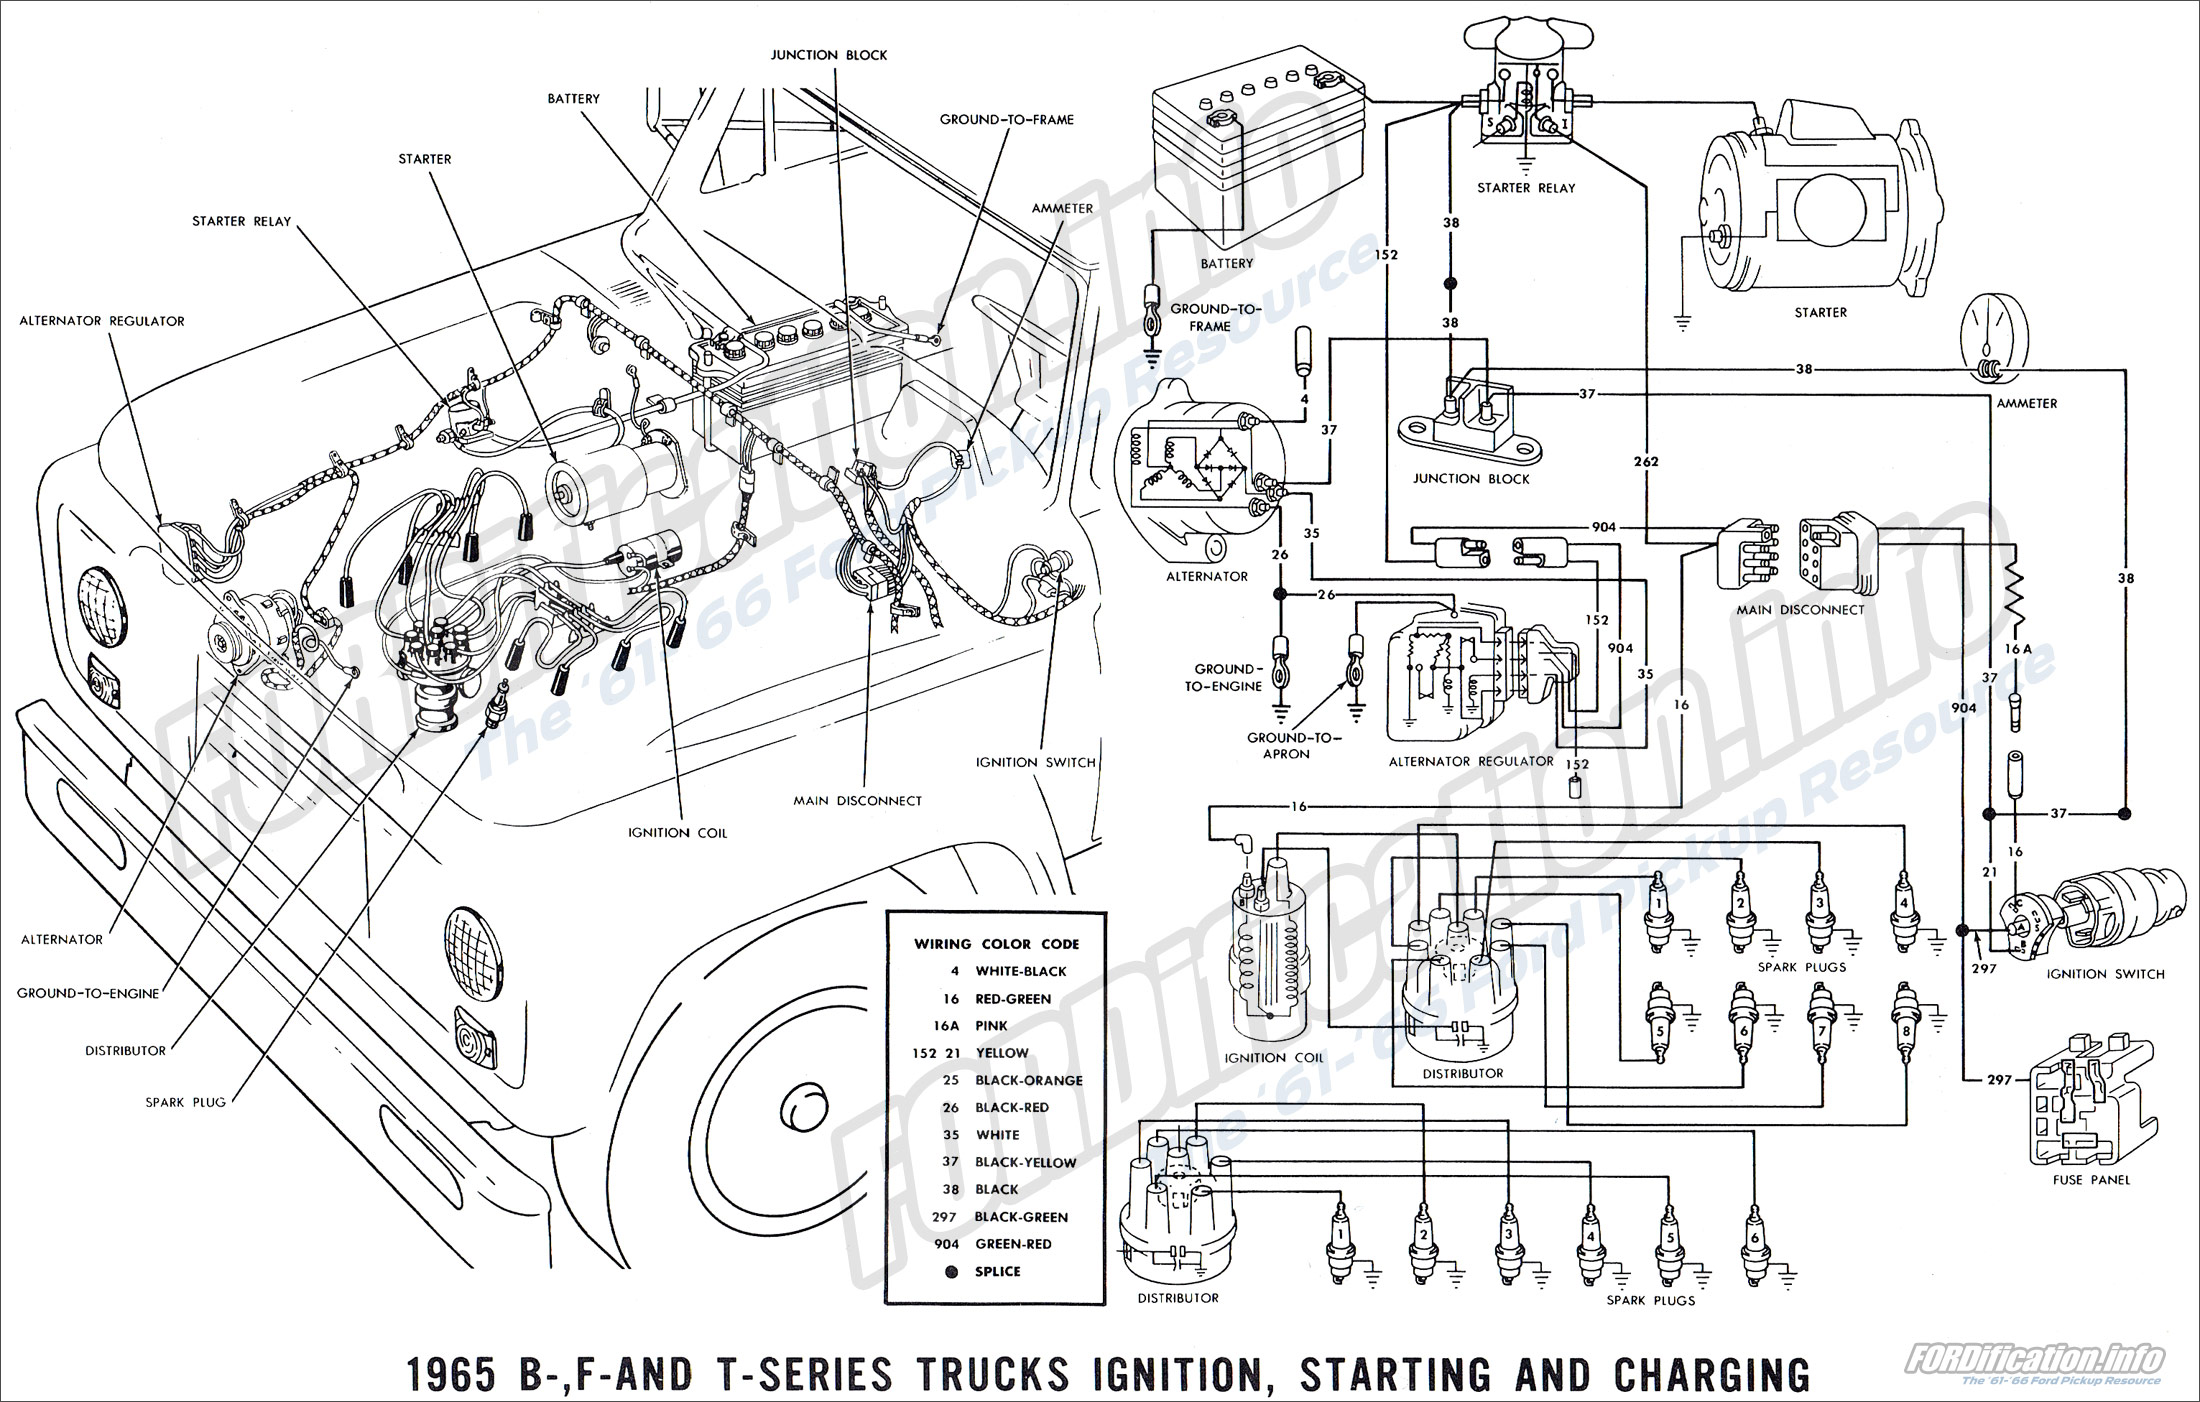 Ford F 250 Wiring Diagram For 1965 Diagram Base Website For 1965 -  HEARTFLOWDIAGRAM.FORTUNEBAND.FRDiagram Base Website Full Edition